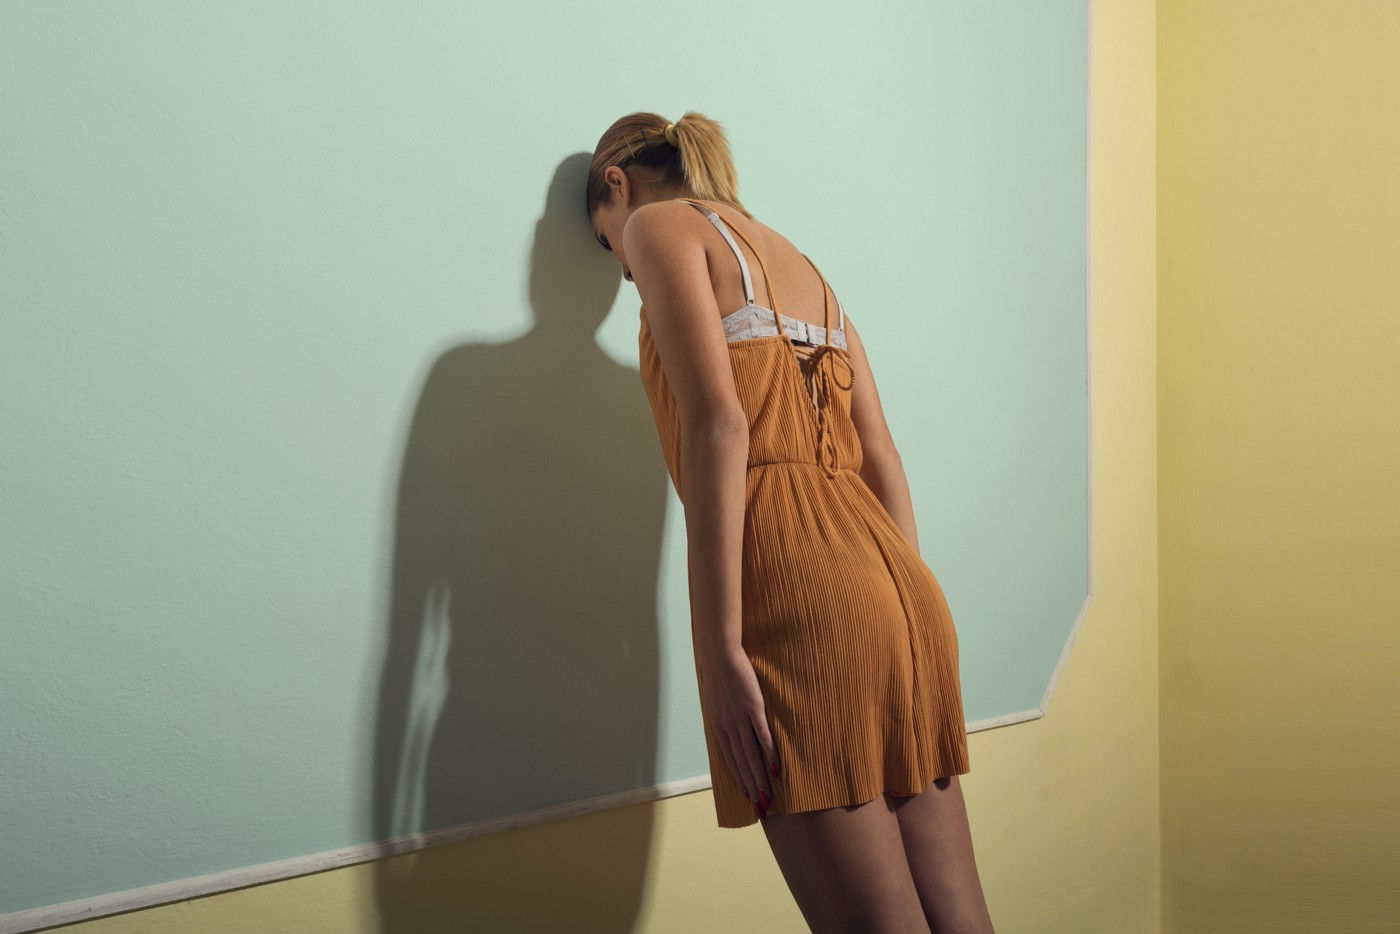 A woman in a corner leaning her head against a wall, as seen from behind.